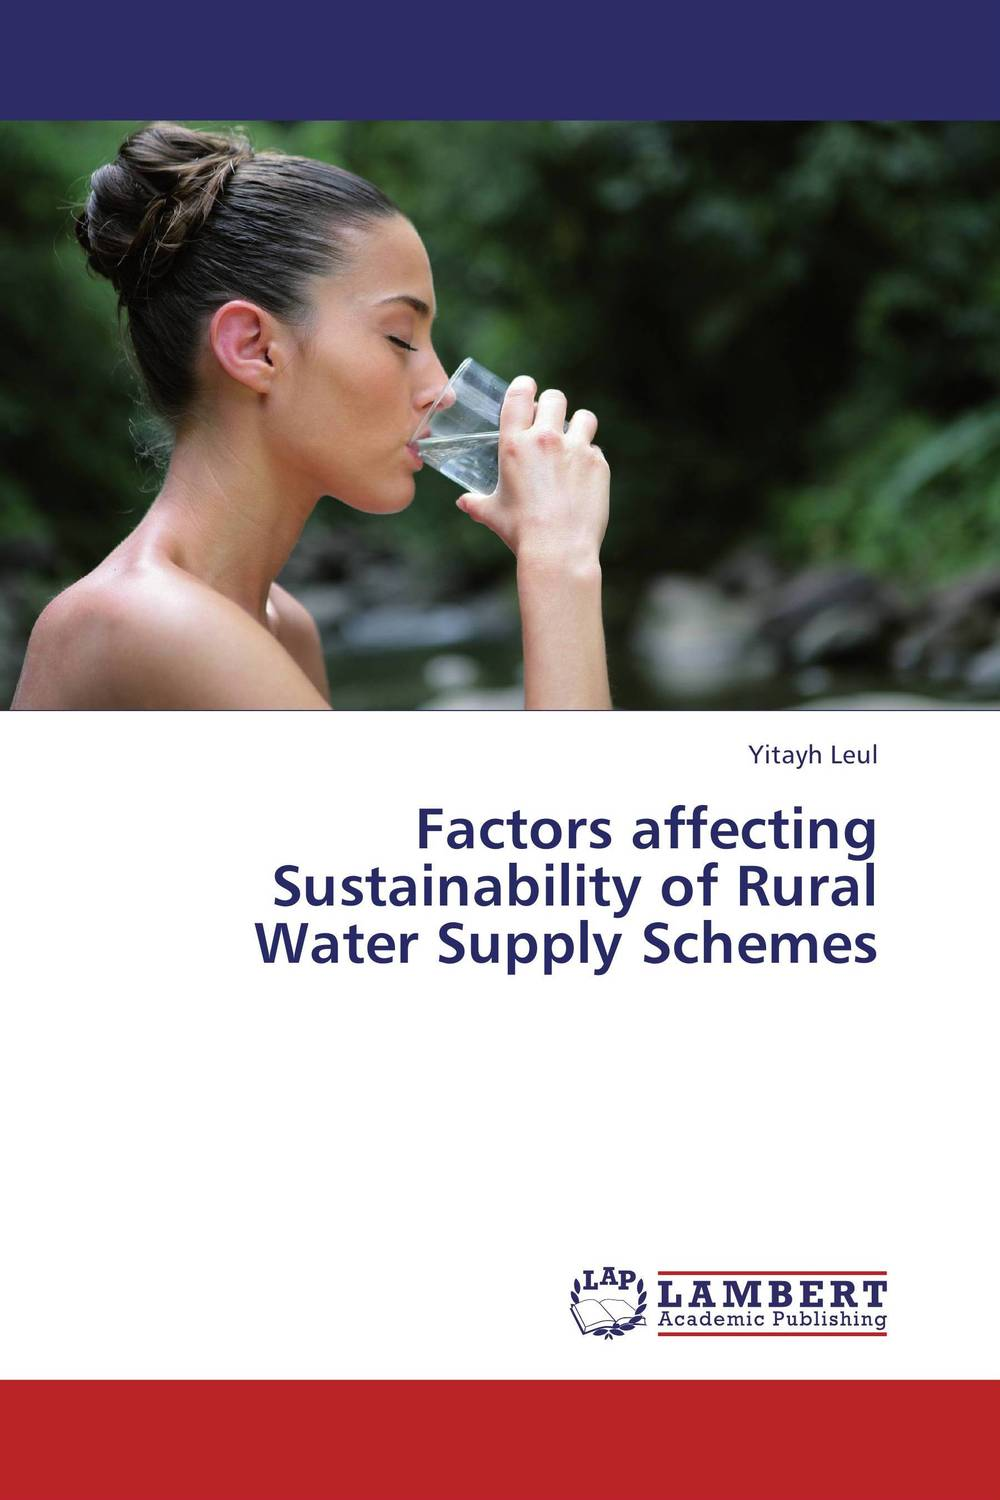 Factors affecting Sustainability of Rural Water Supply Schemes maurice ombok determinants of water accessibility in kenya